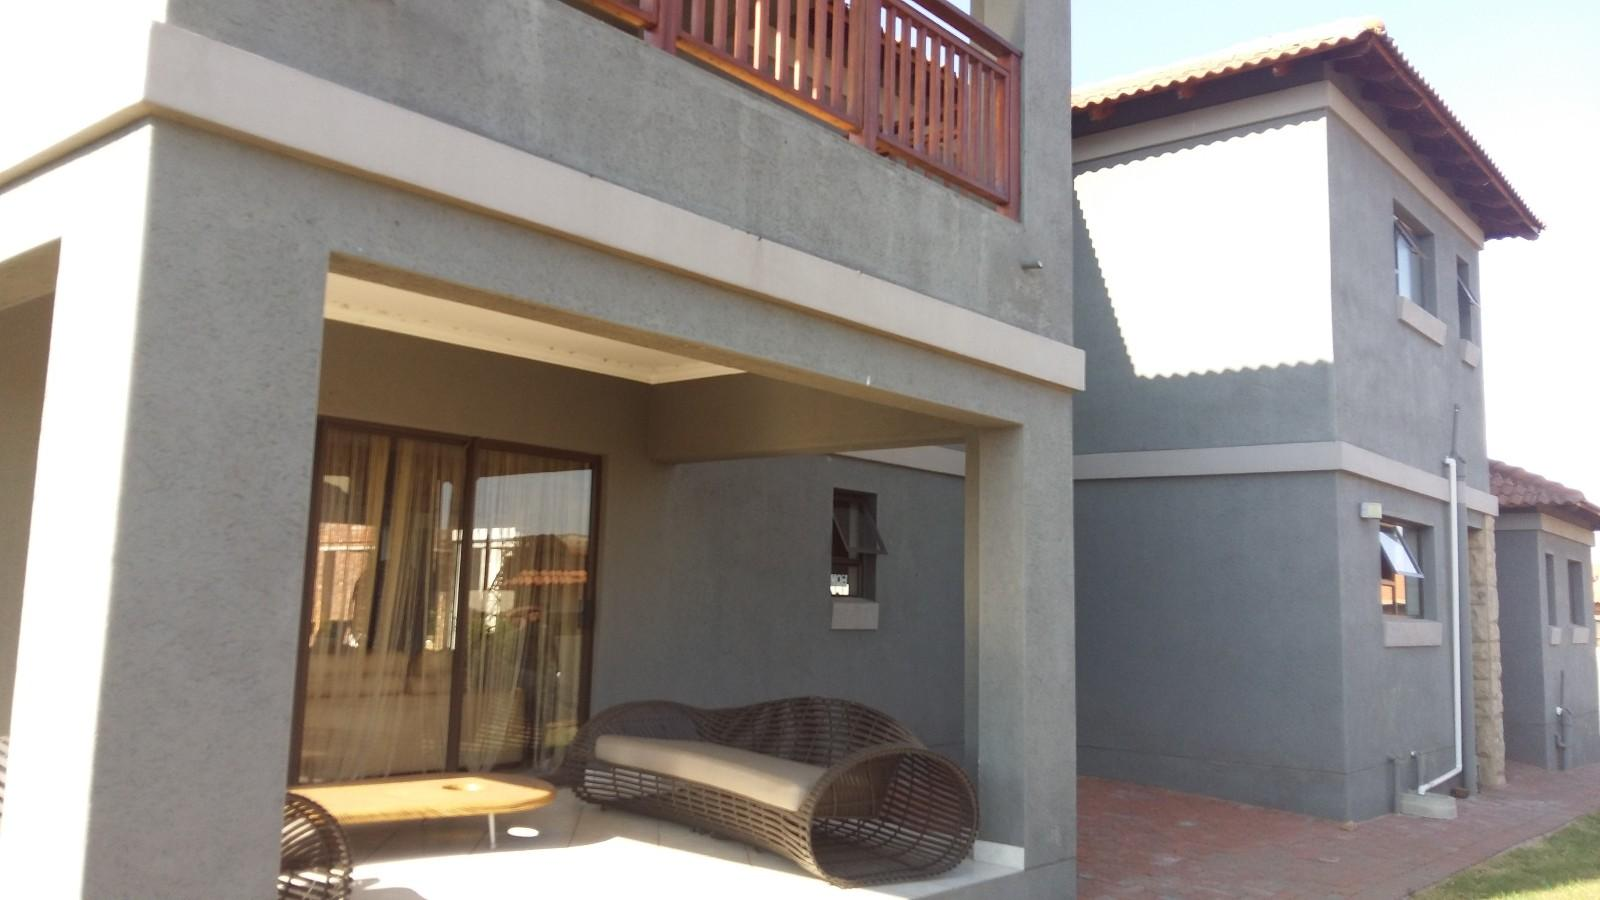 House in Birdwood Estate - 1_Front_view_of_house.jpg